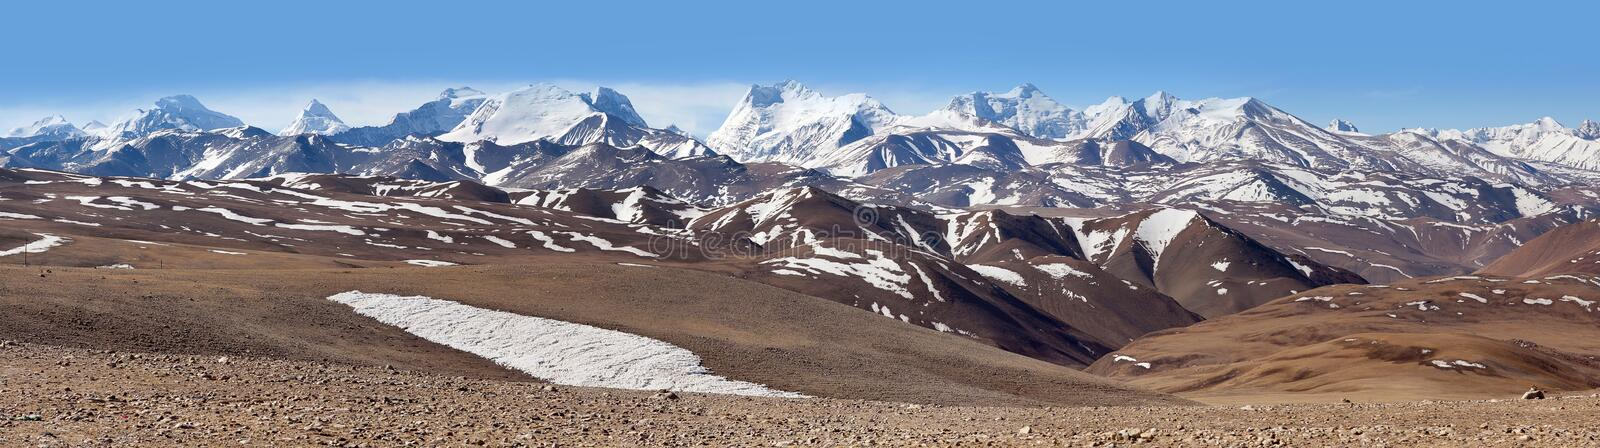 Panorama of snowcapped Himalaya Mountains in Tibet, China. Panorama of snowcapped Himalaya Mountains in Ngari Prefecture, Western Tibet, China stock photo